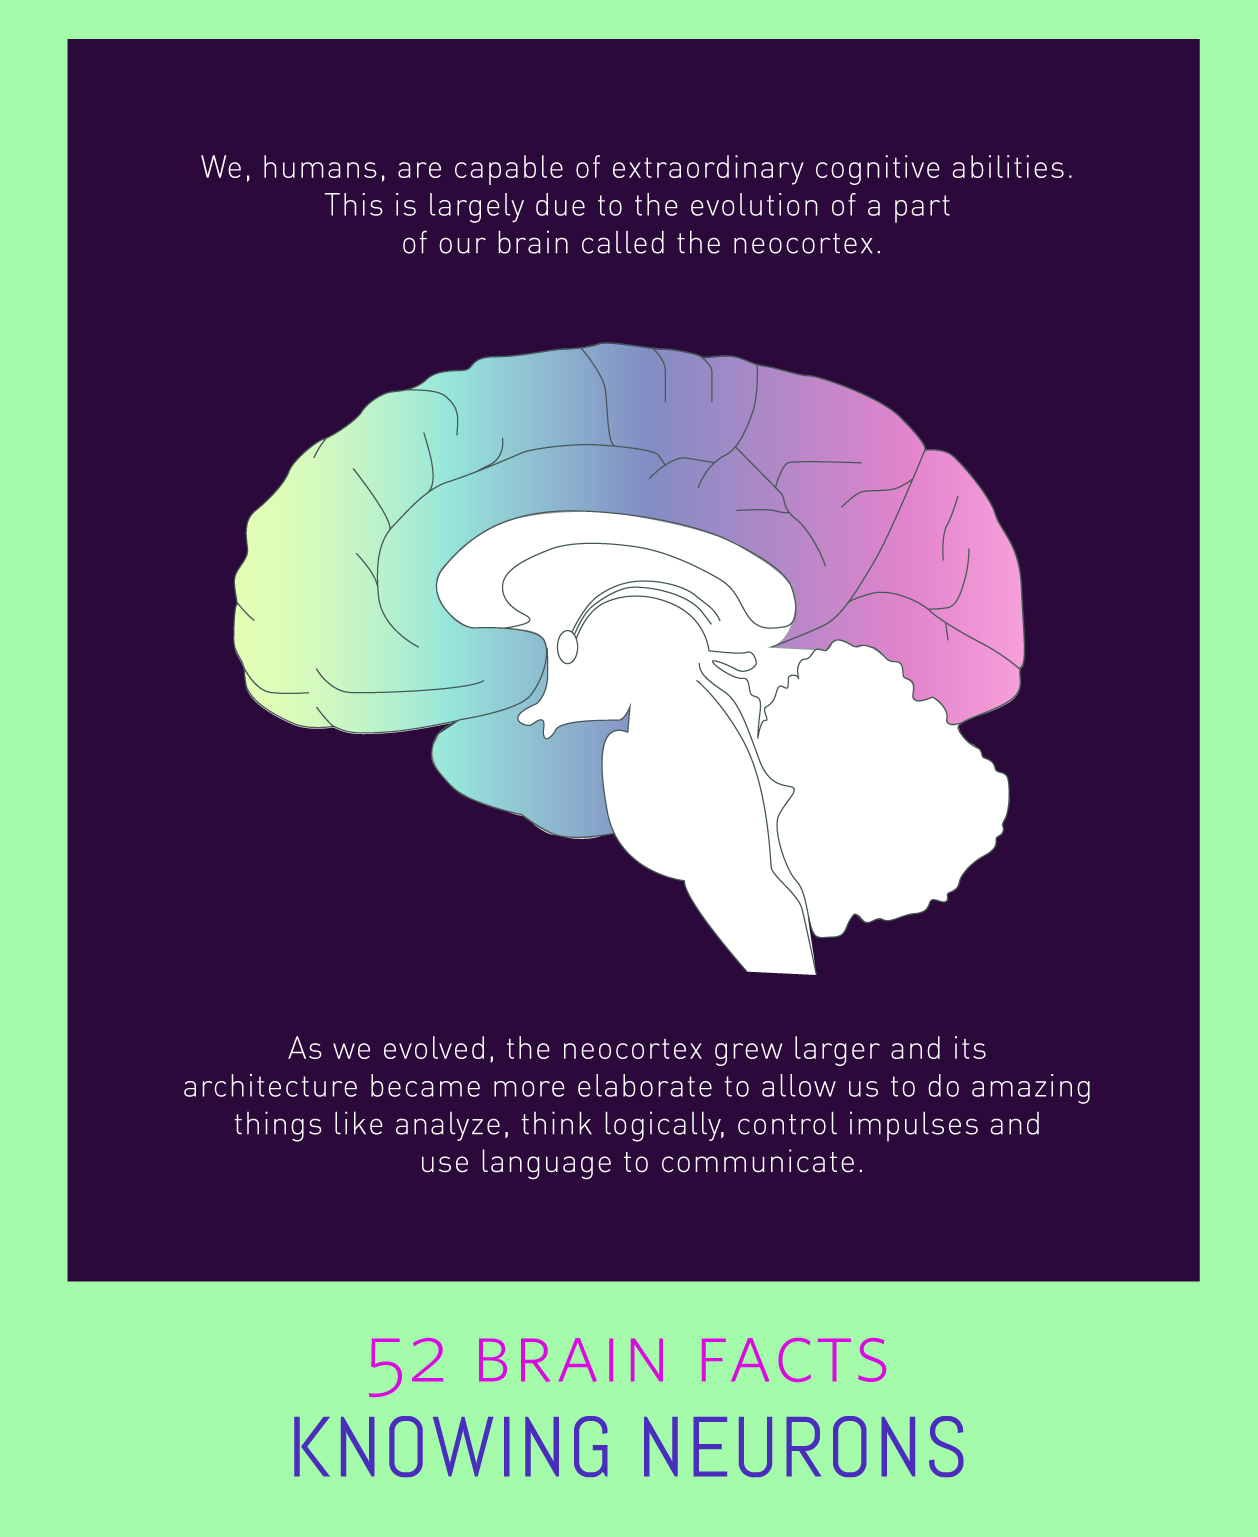 Myth or Fact? One region of the brain sets us humans apart from other species.